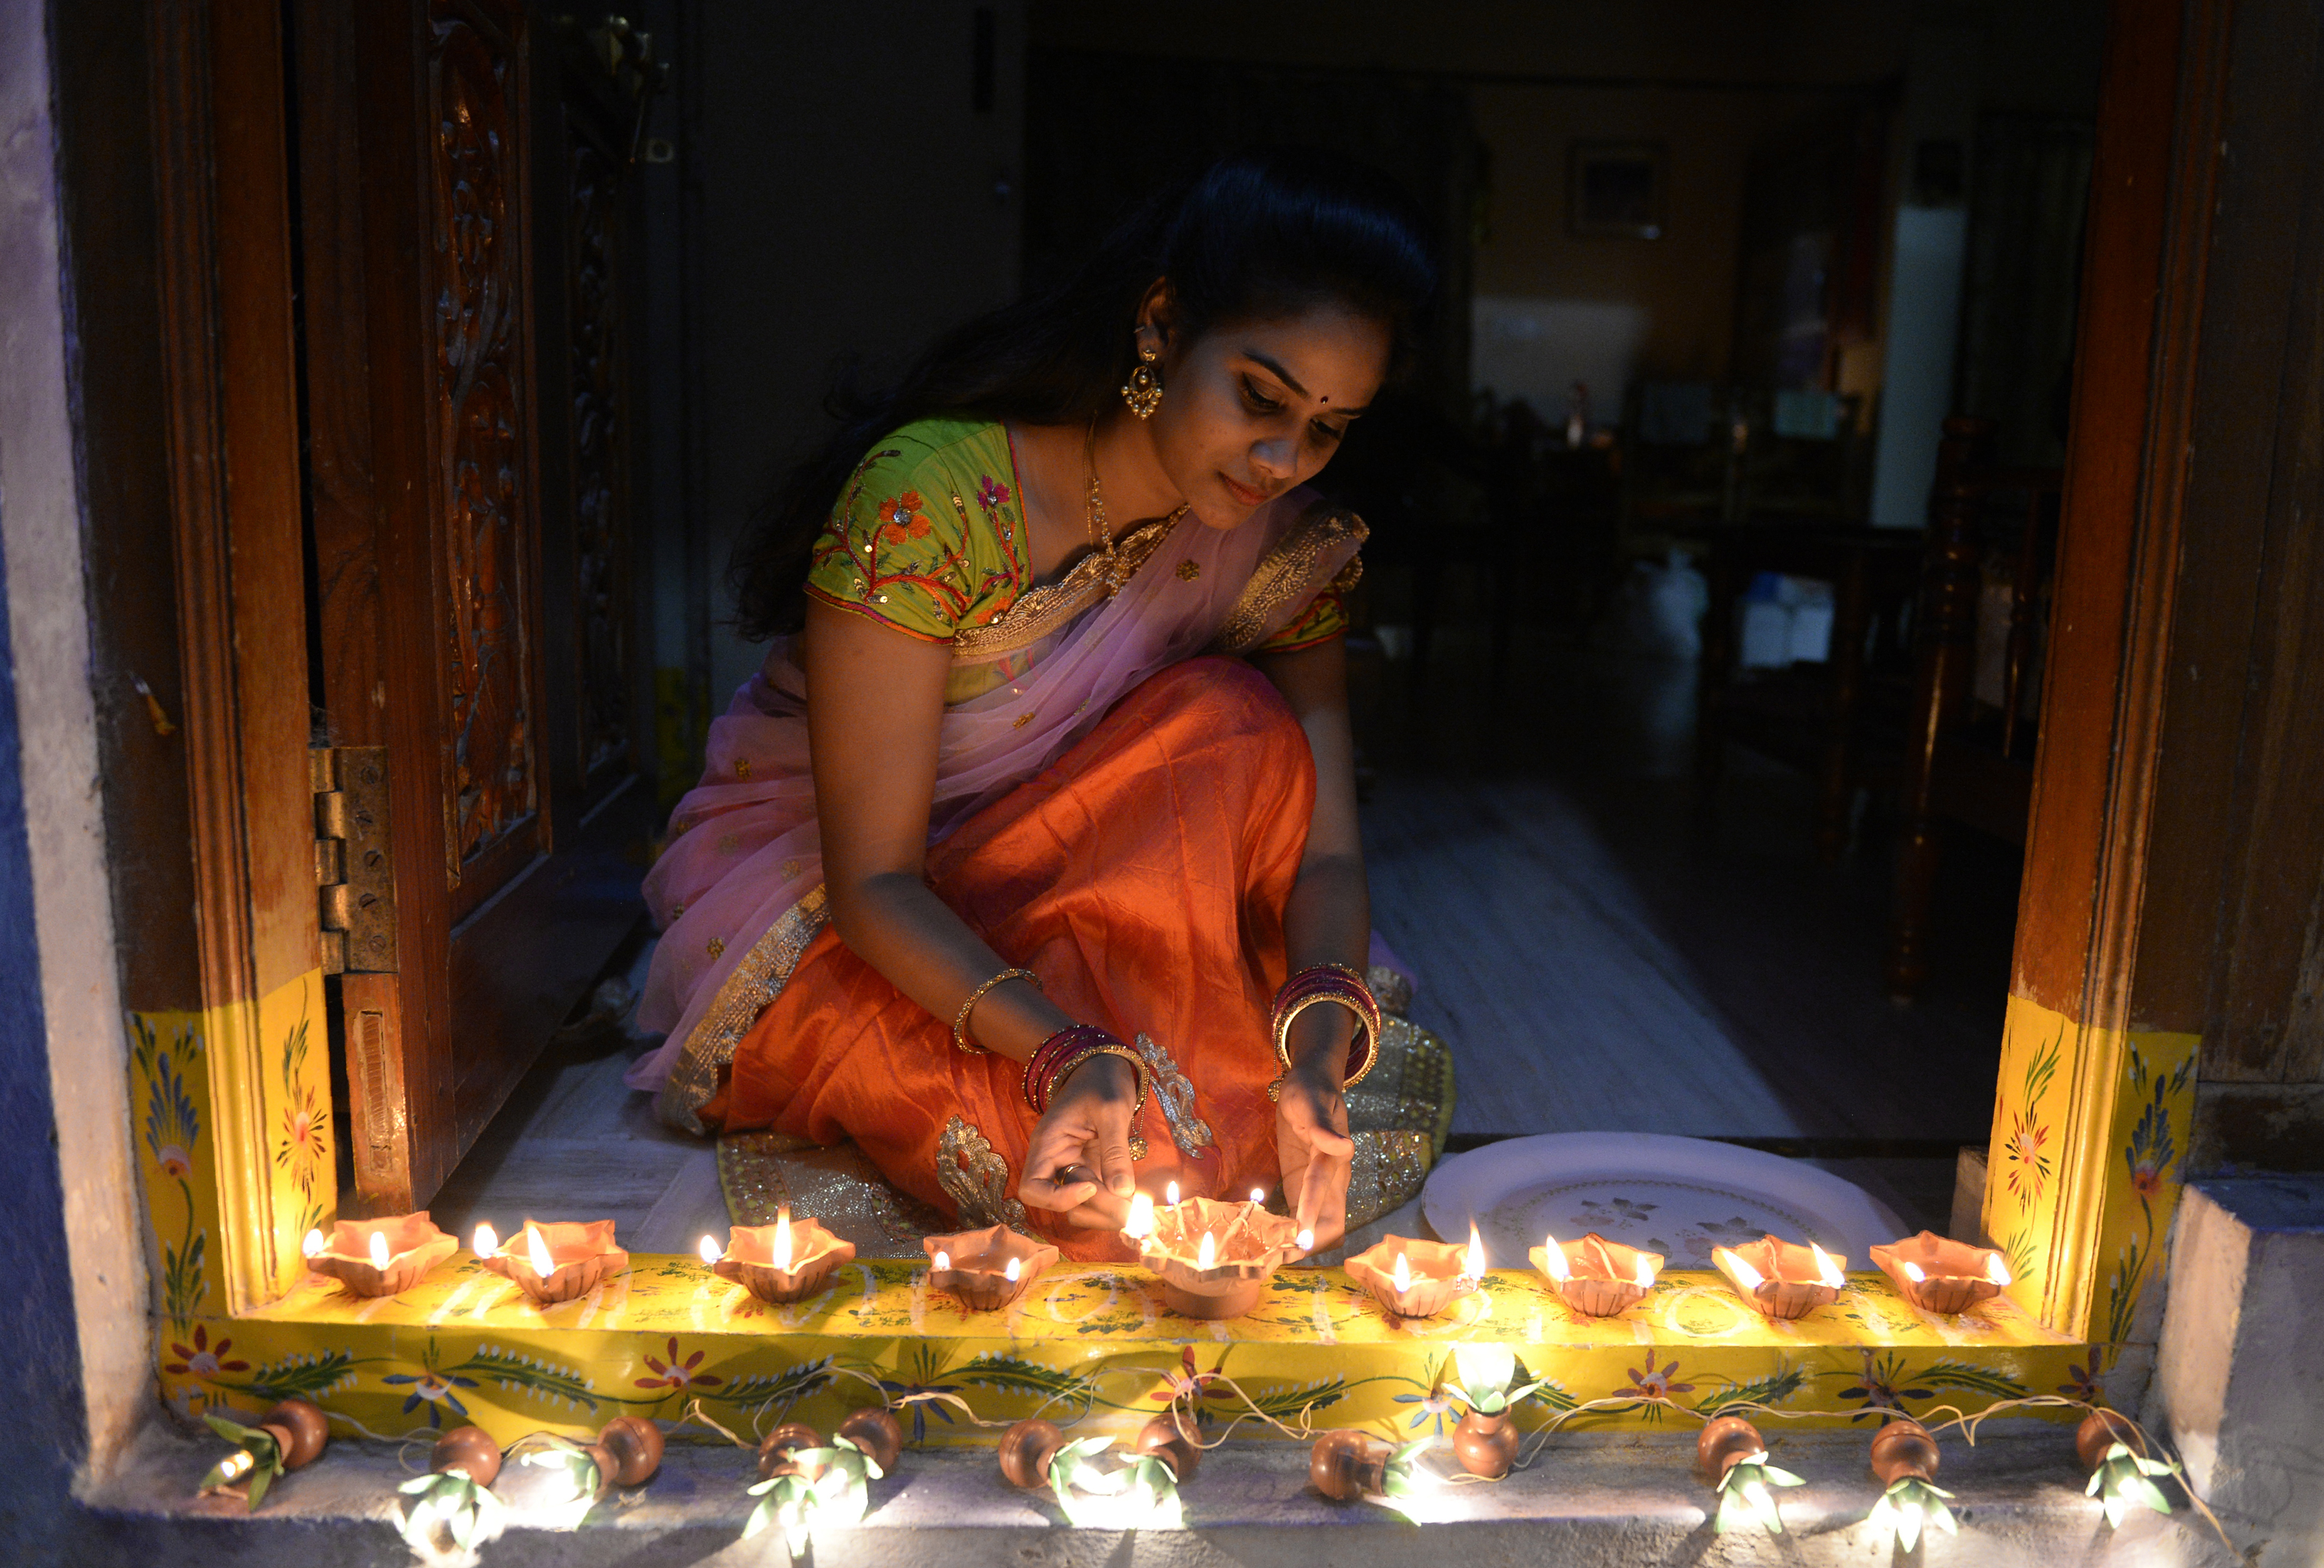 A woman places lamps at her home in Hyderabad. (Credit: AFP)